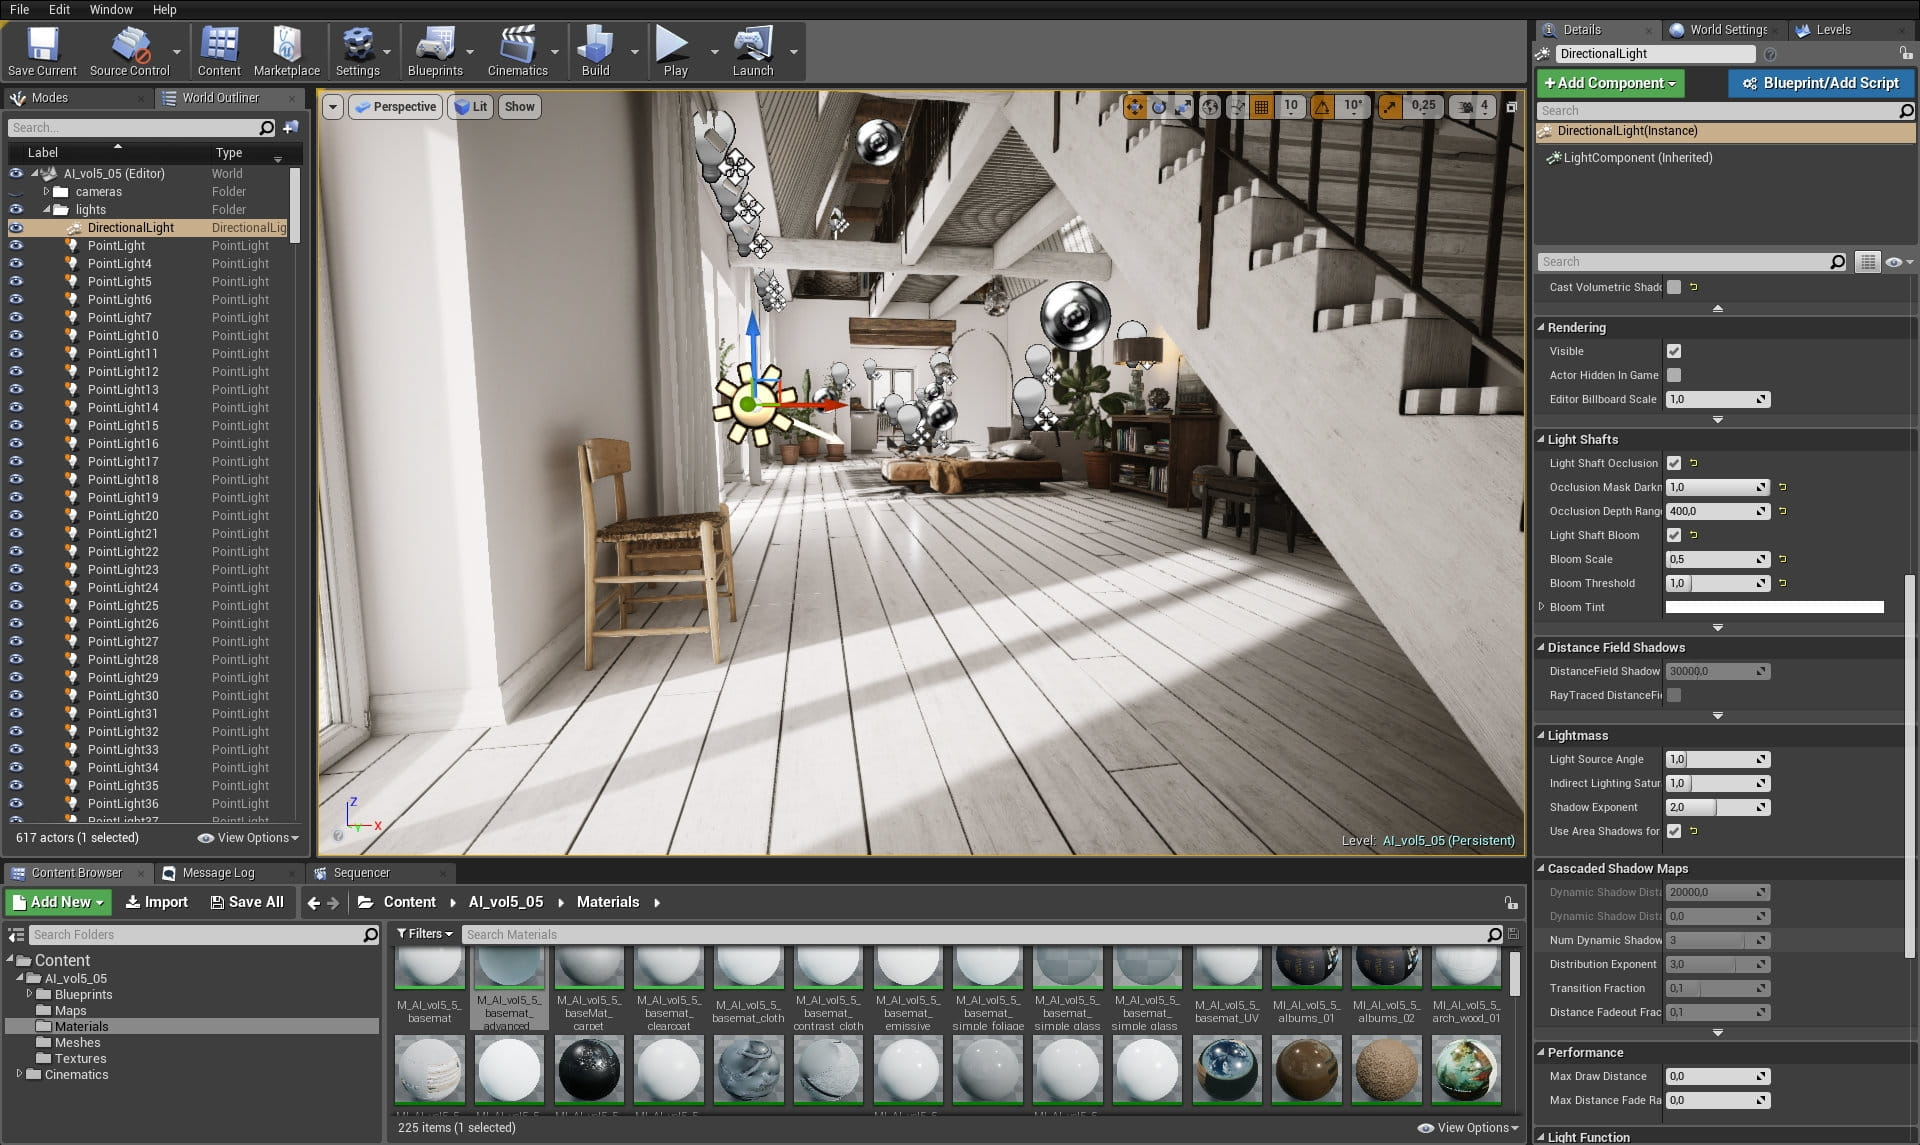 Unreal Engine 4: Making of Artistic Loft - Evermotion